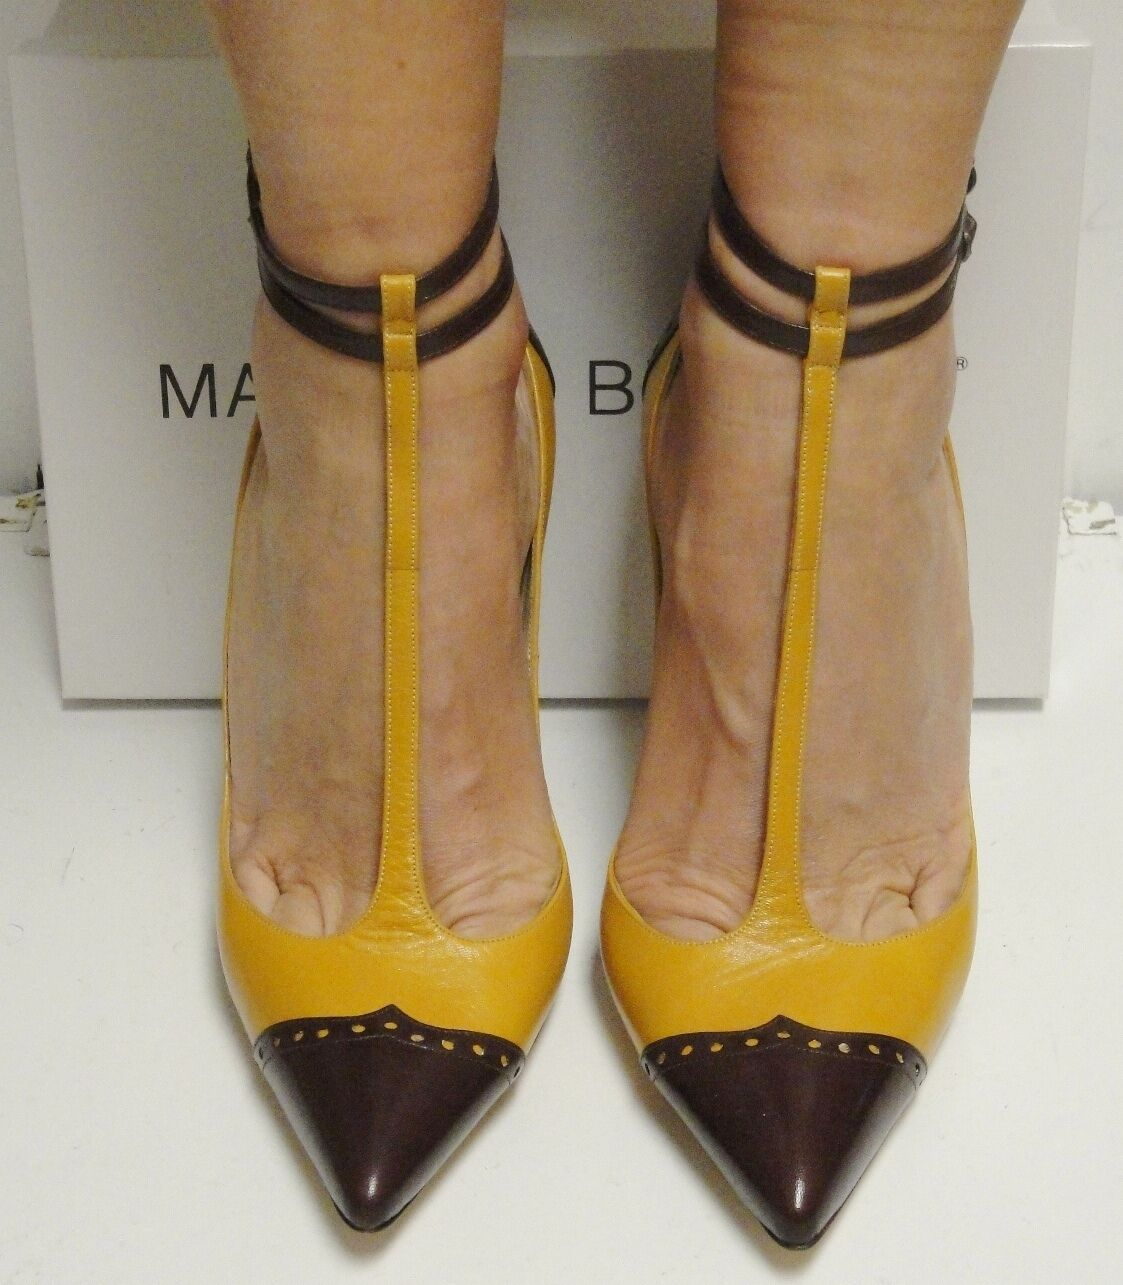 Manolo Blahnik Two Tone Leather Pointed T-Strap Strappy Heels Pumps Shoes 41